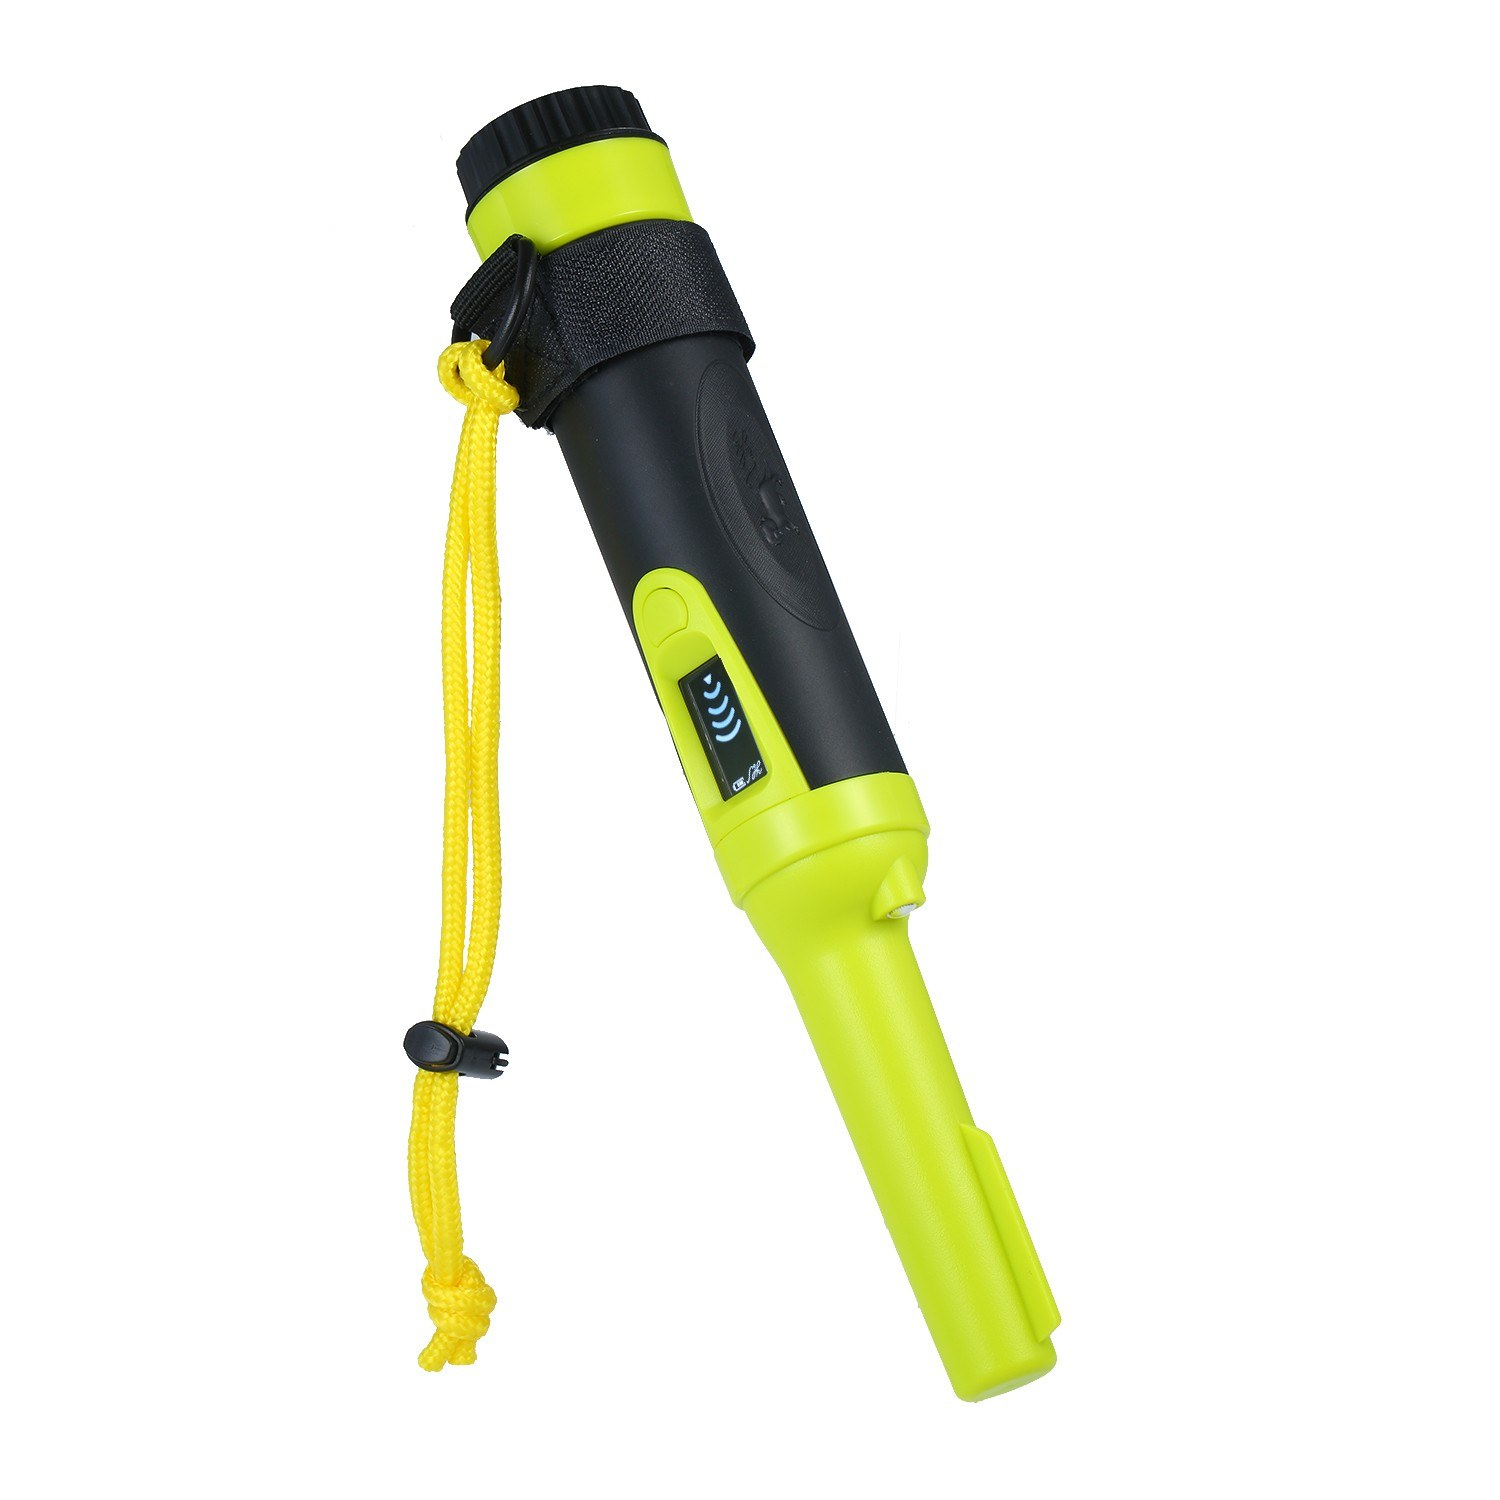 Handheld Pinpointer Metal Detector with Screen Display Portable Pin Pointer Waterproof Metal Pointer Treasure Hunting Tool Metal Locator Buzzer Vibration Automatic Tuning with Belt Holster